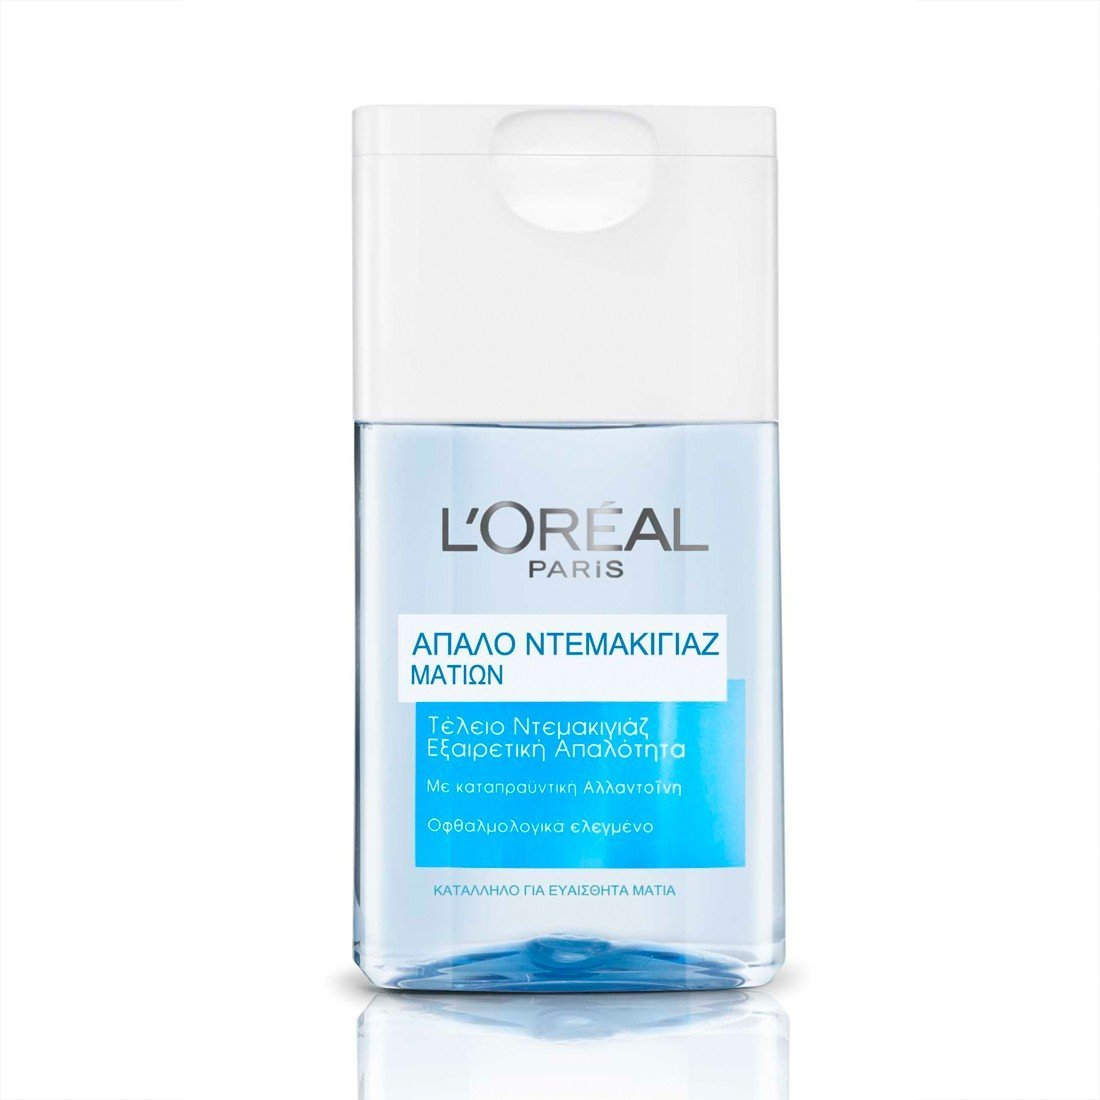 L'OREAL PARIS WATERPROOF ΕΥΕ & LIPS MAKEUP REMOVER